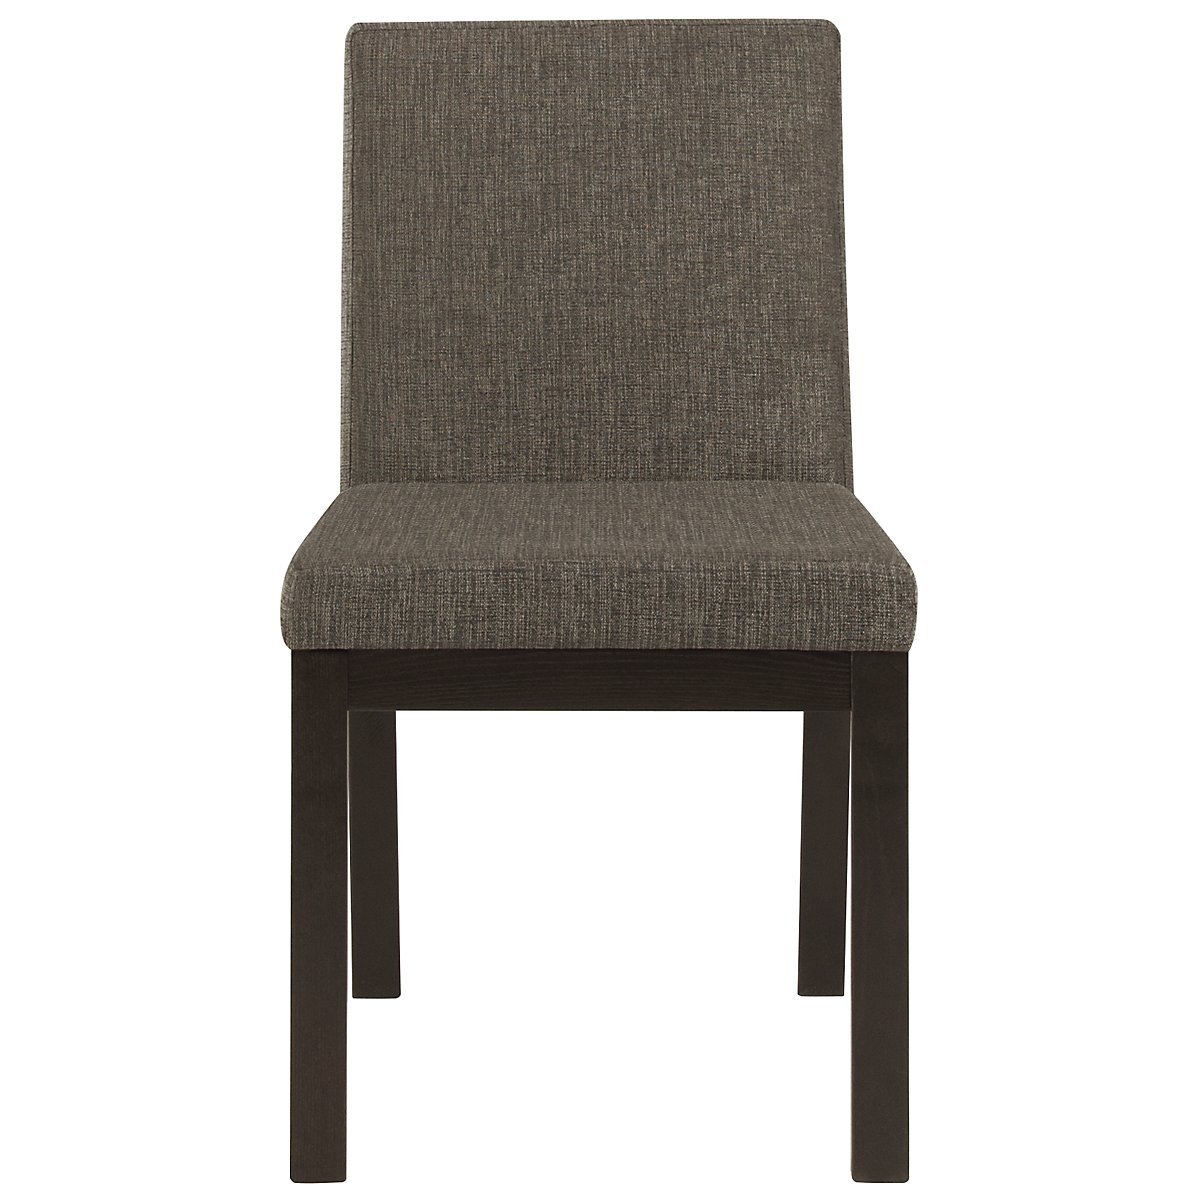 Bayberry Dark Tone Round Table 4 Chairs: City Furniture: Tocara Dark Tone Round Table & 4